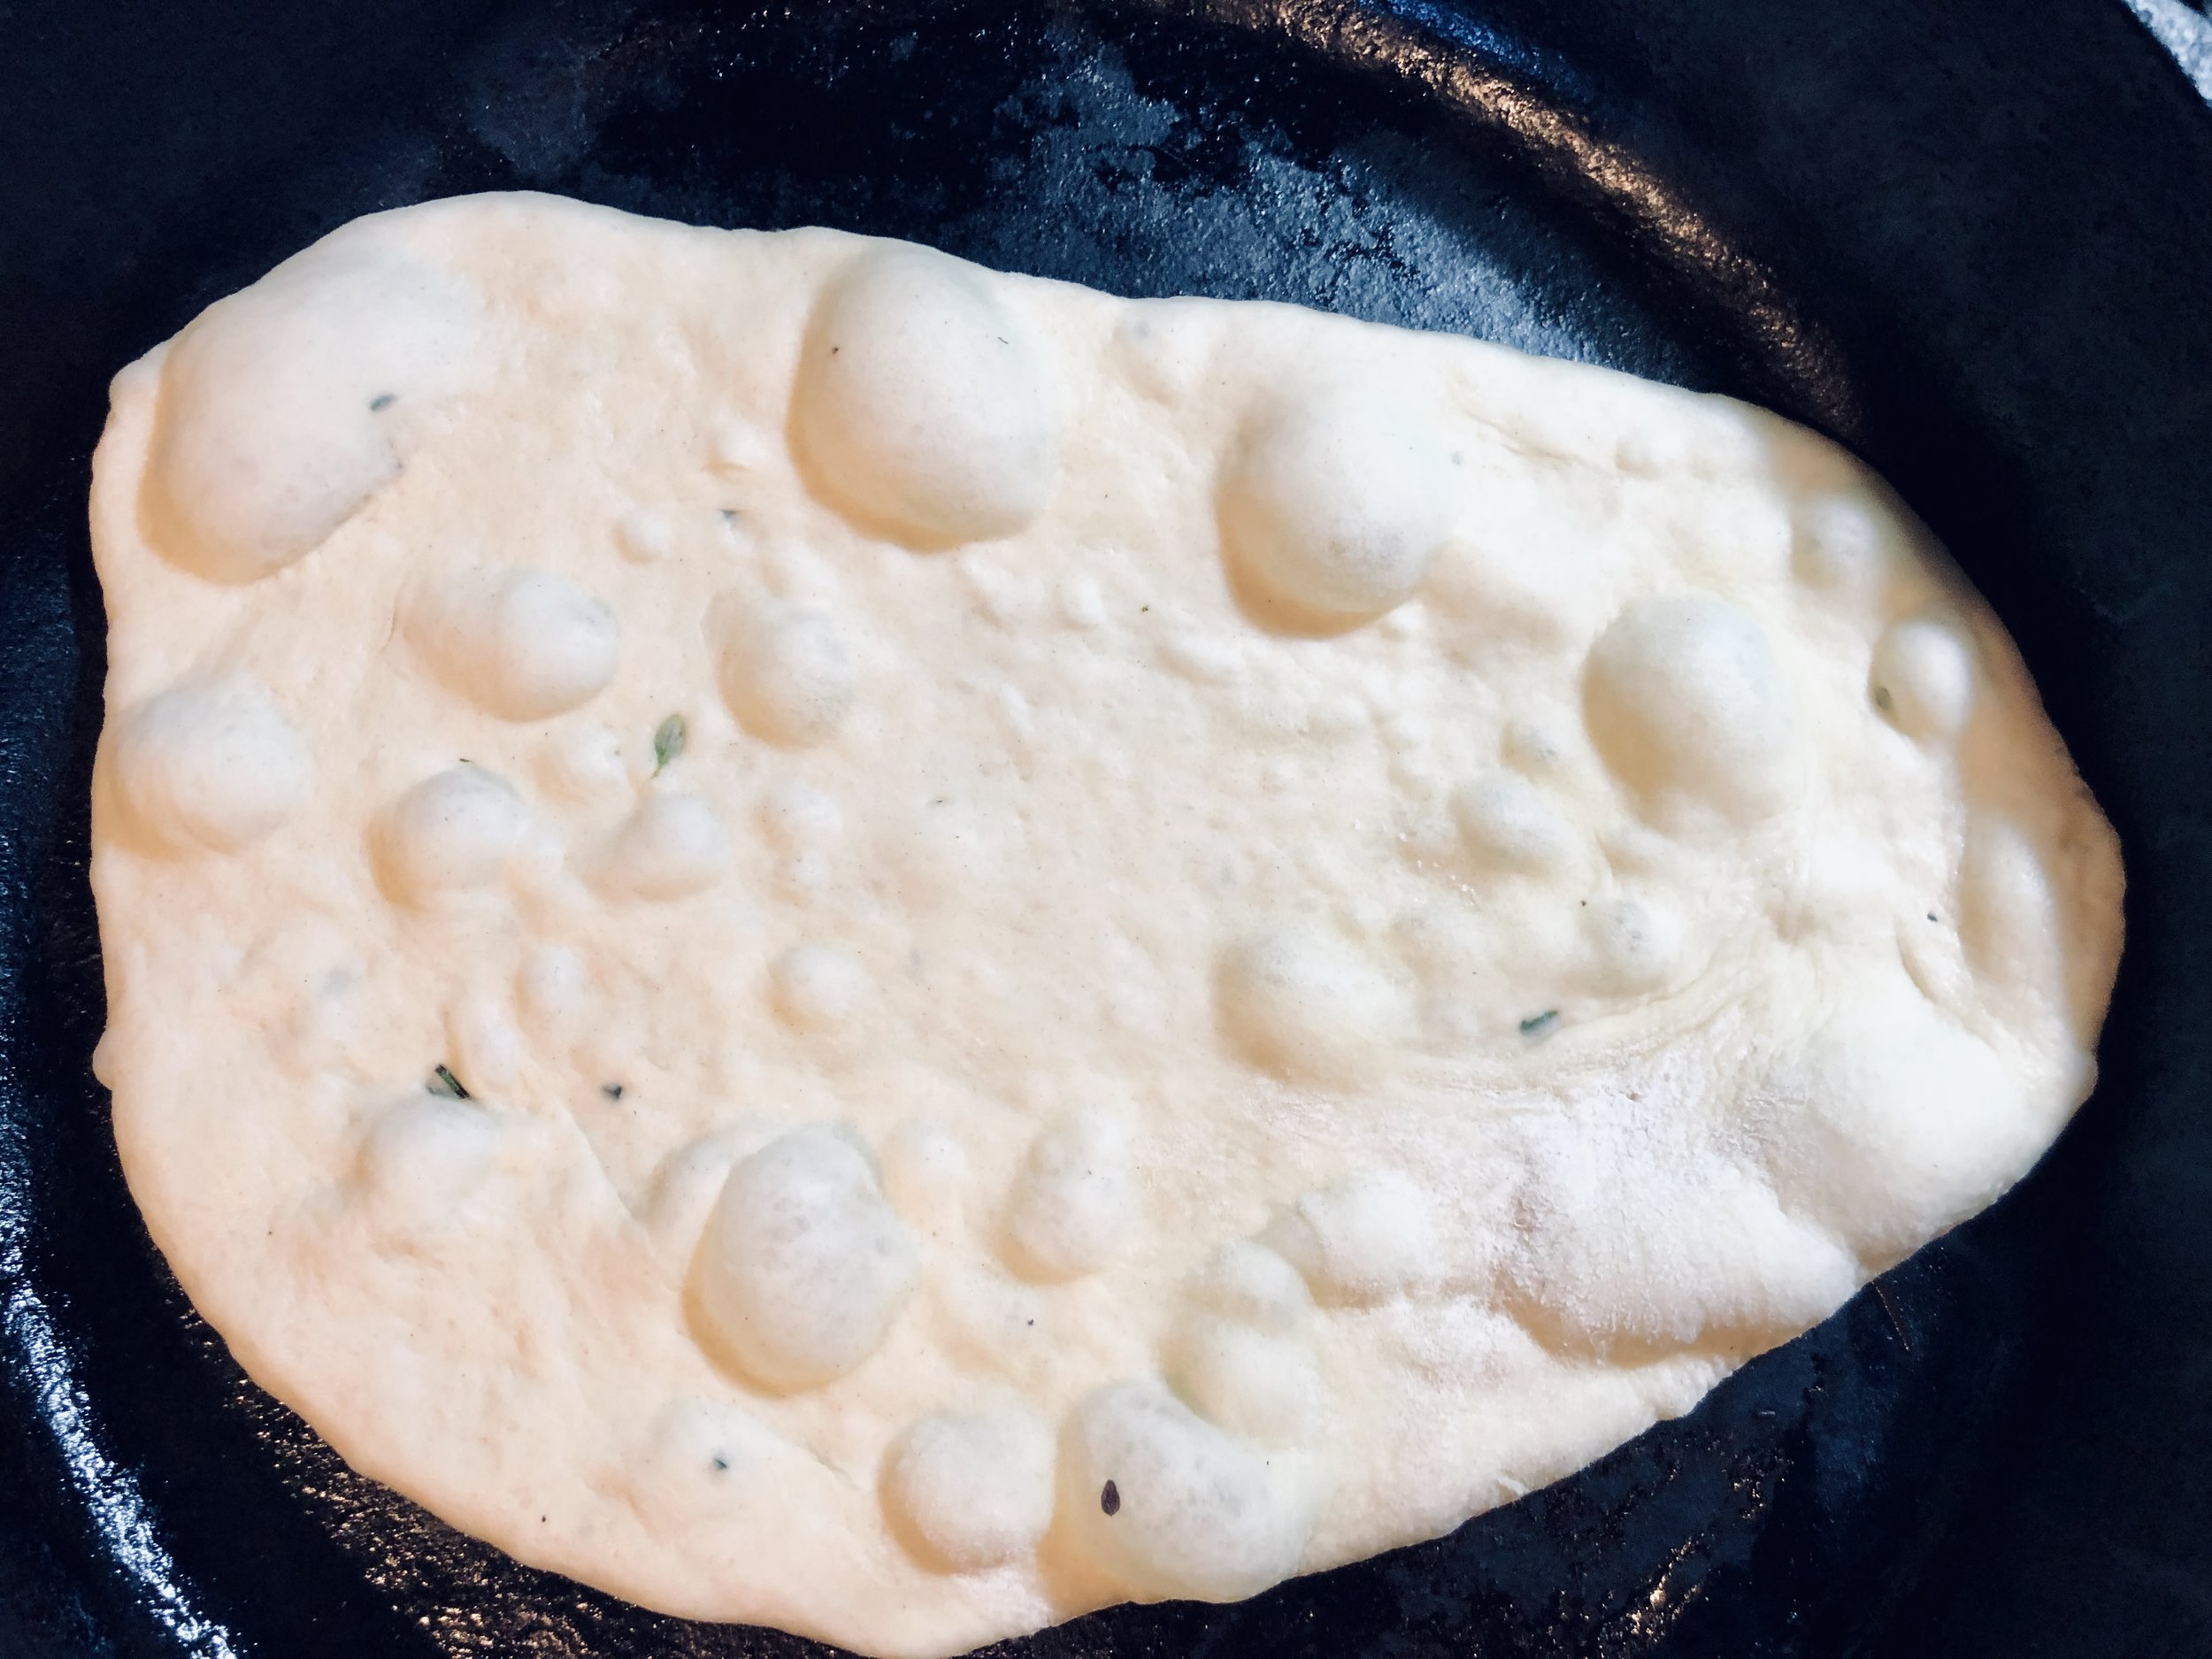 Grill in a hot cast iron pan until it bubbles… then flip!